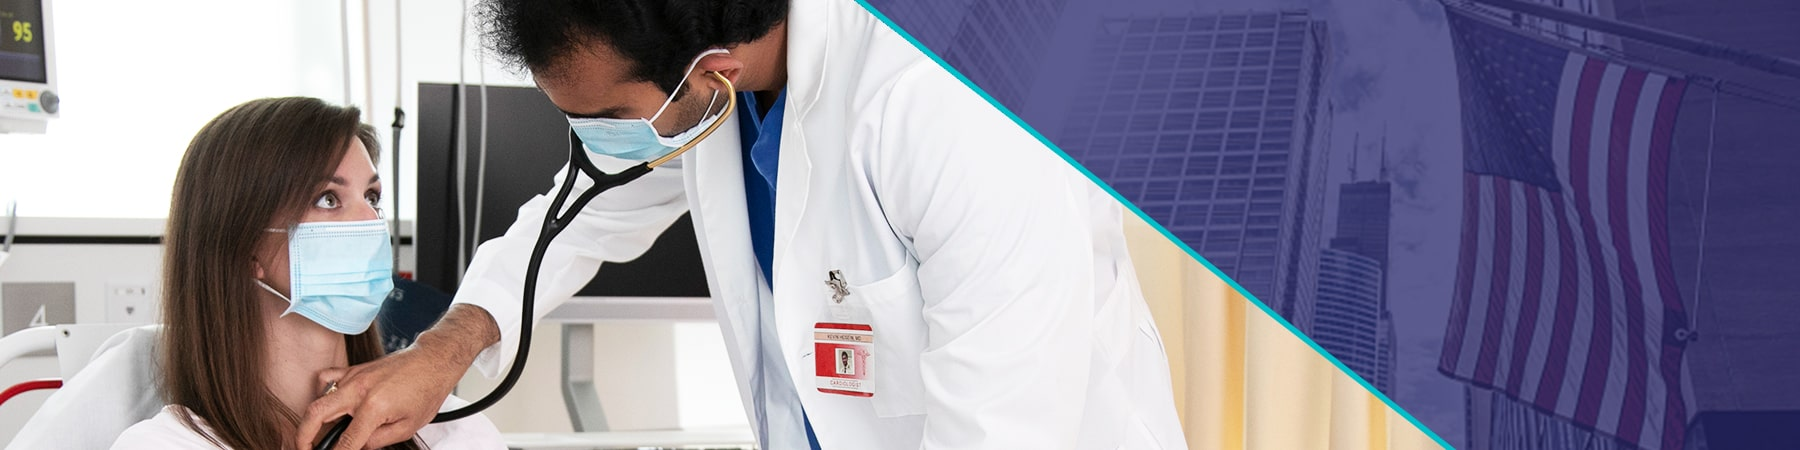 Split-screen image showing a doctor examining a patient with a stethoscope on the left and a US skyline on the right.